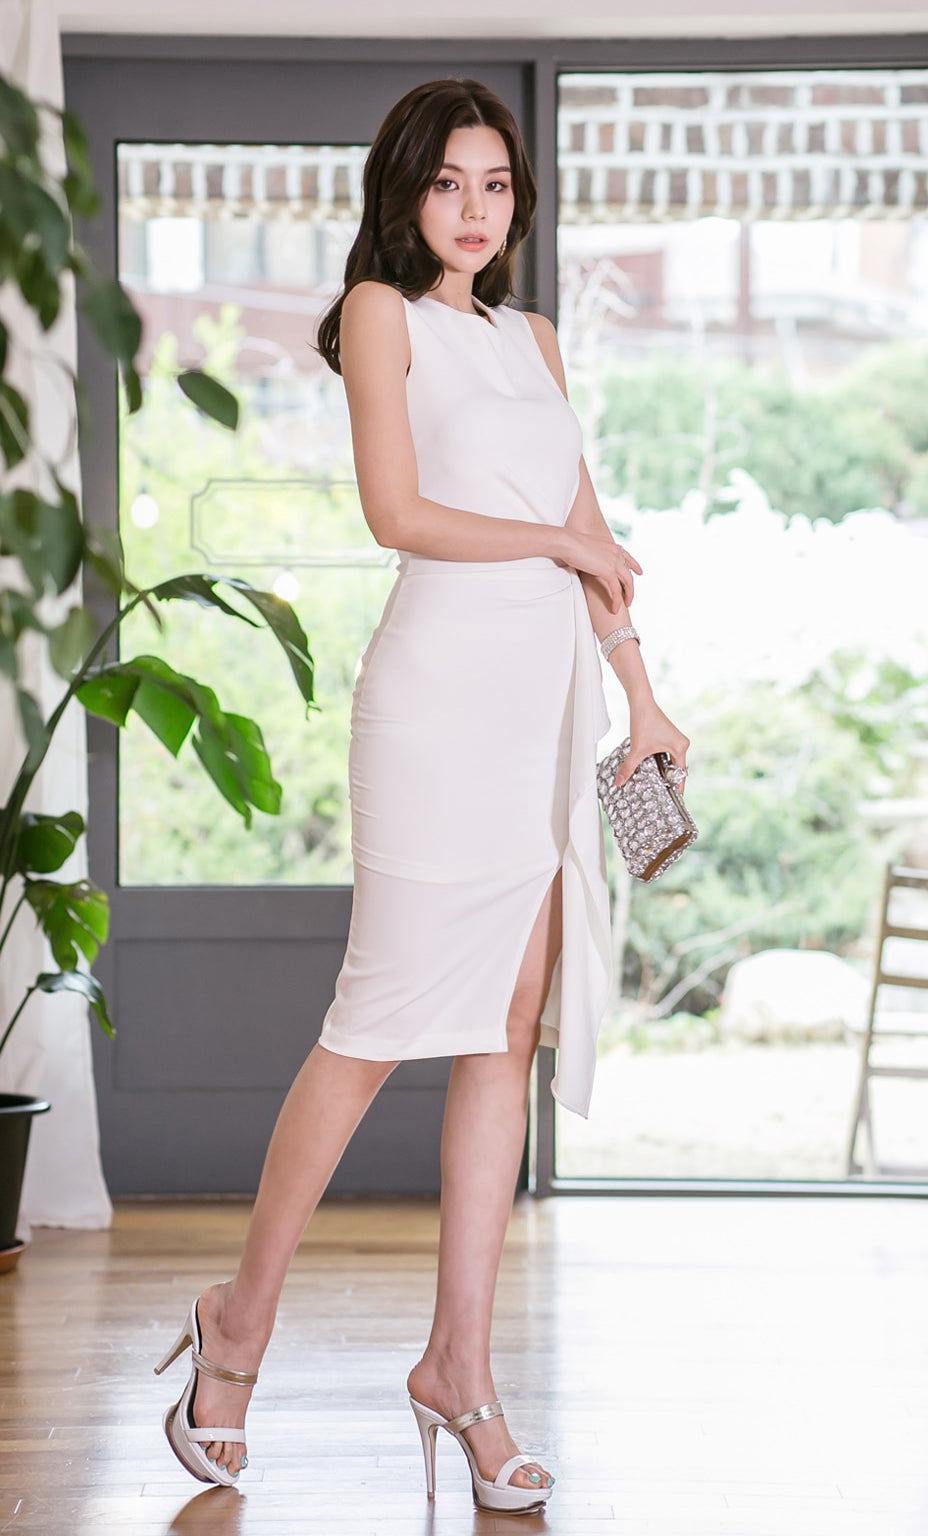 Women Sleeveless Solid Vest Knee-Length Vestidos Bodycon Sexy Ruffles Party Dress Creationsg